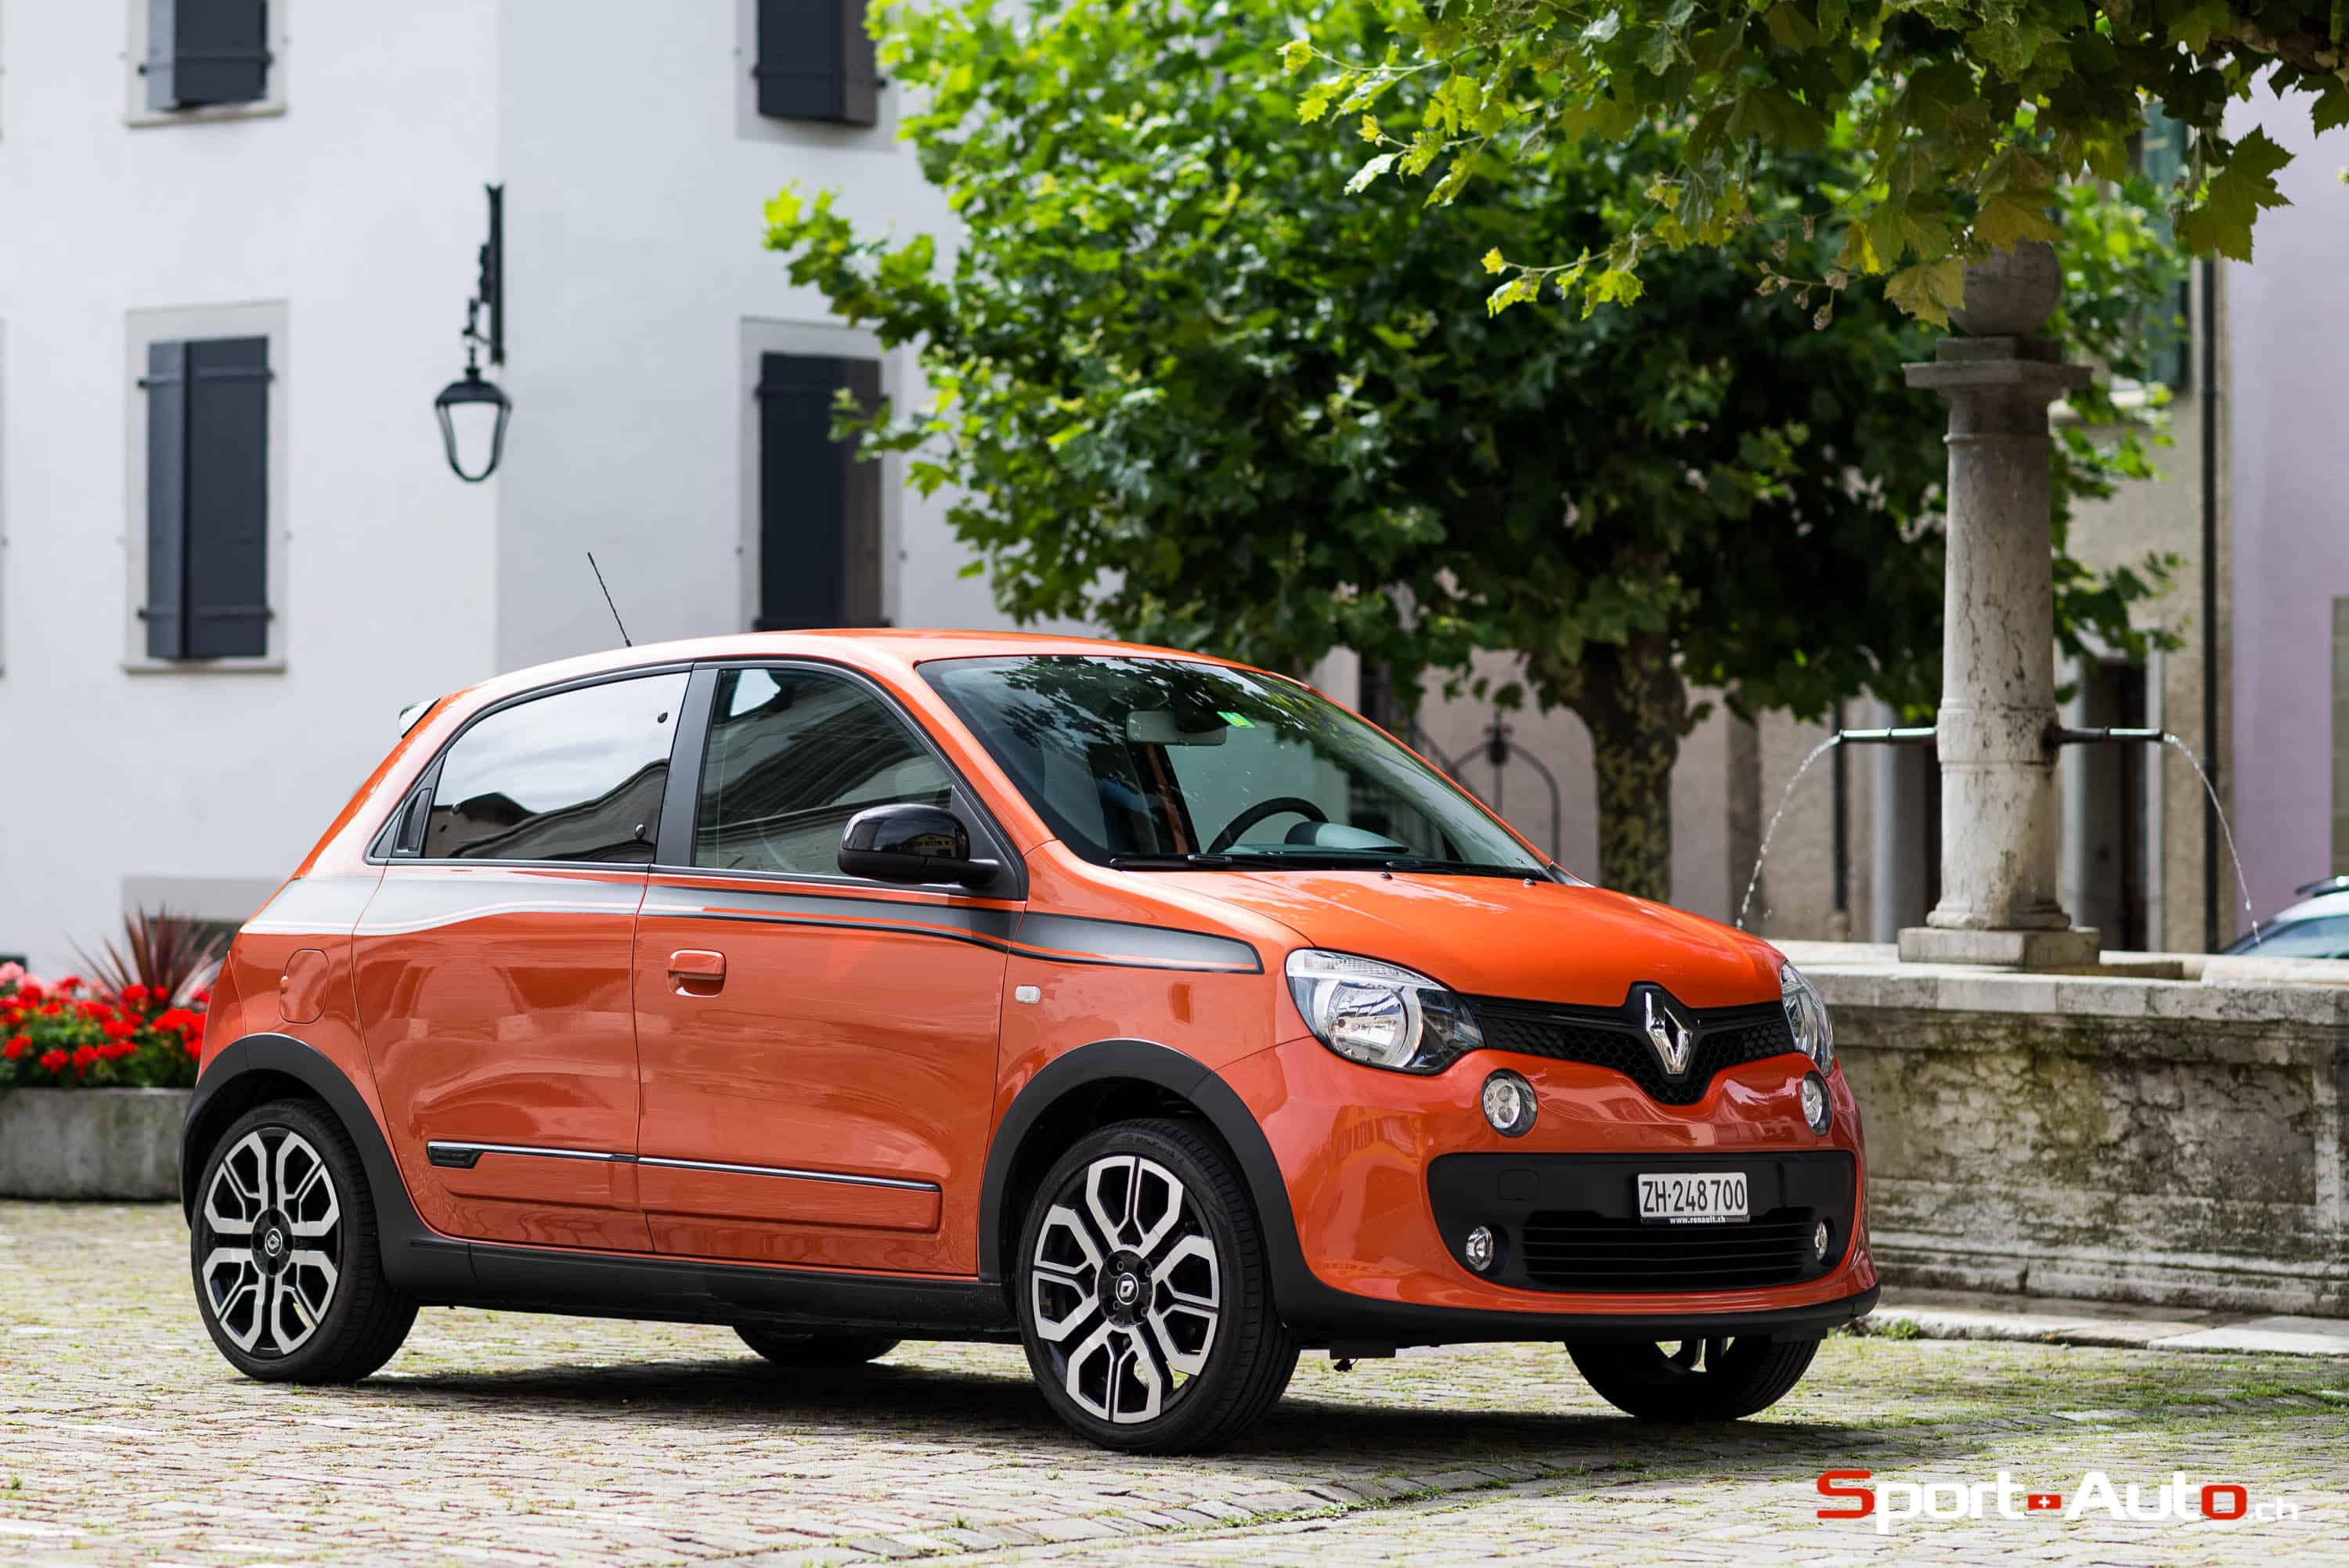 essai renault twingo gt sport. Black Bedroom Furniture Sets. Home Design Ideas